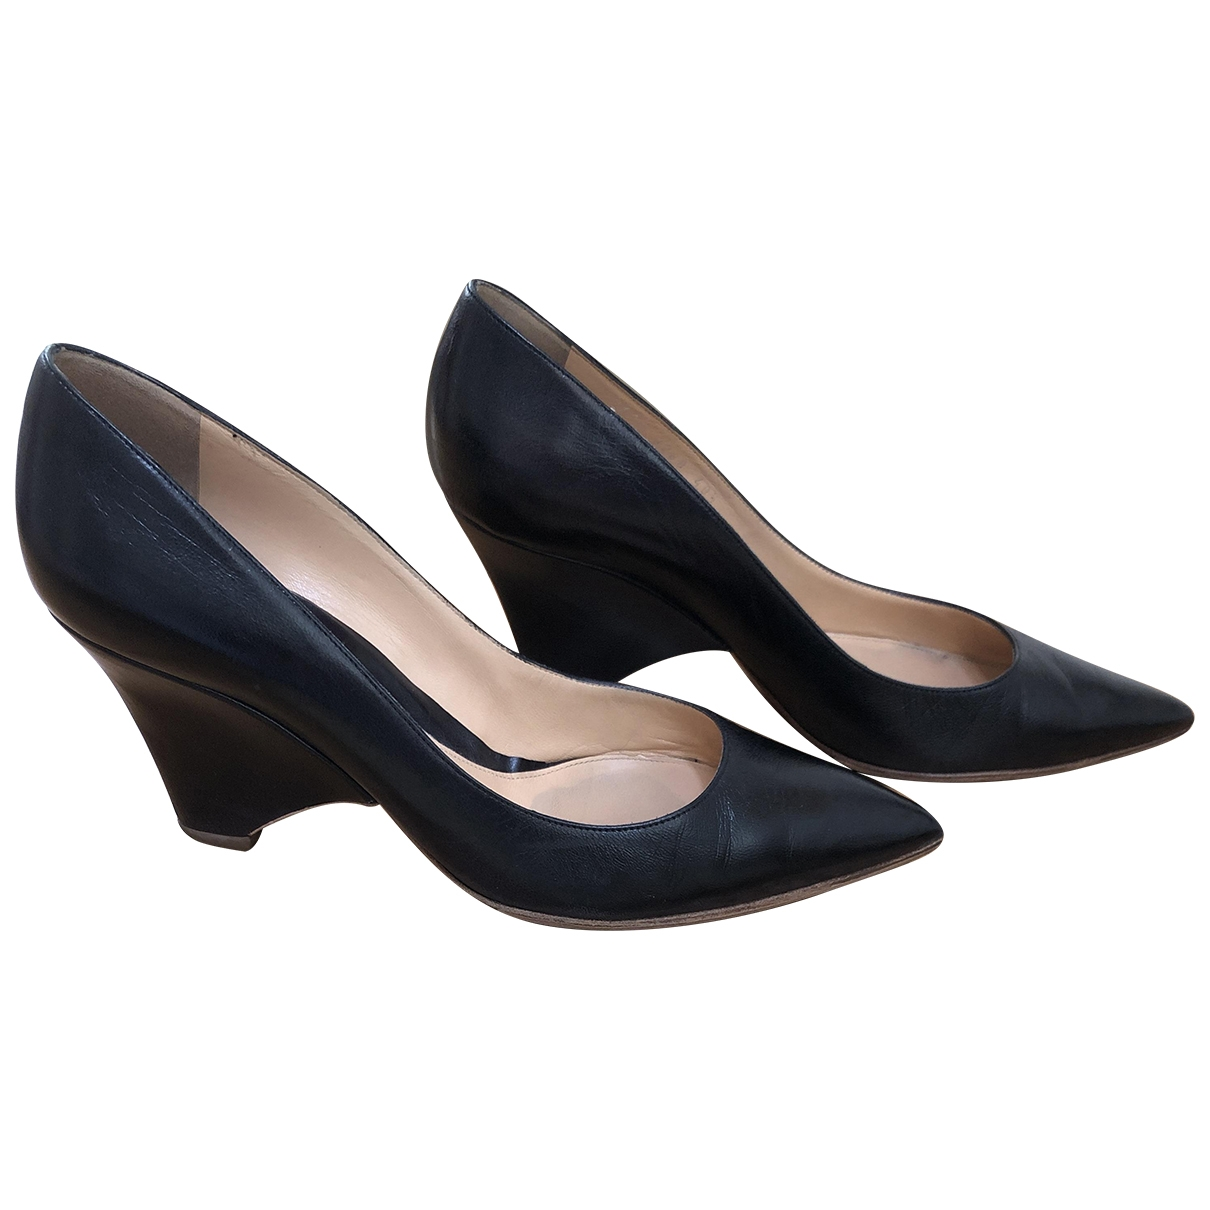 Sergio Rossi \N Black Leather Heels for Women 40.5 EU